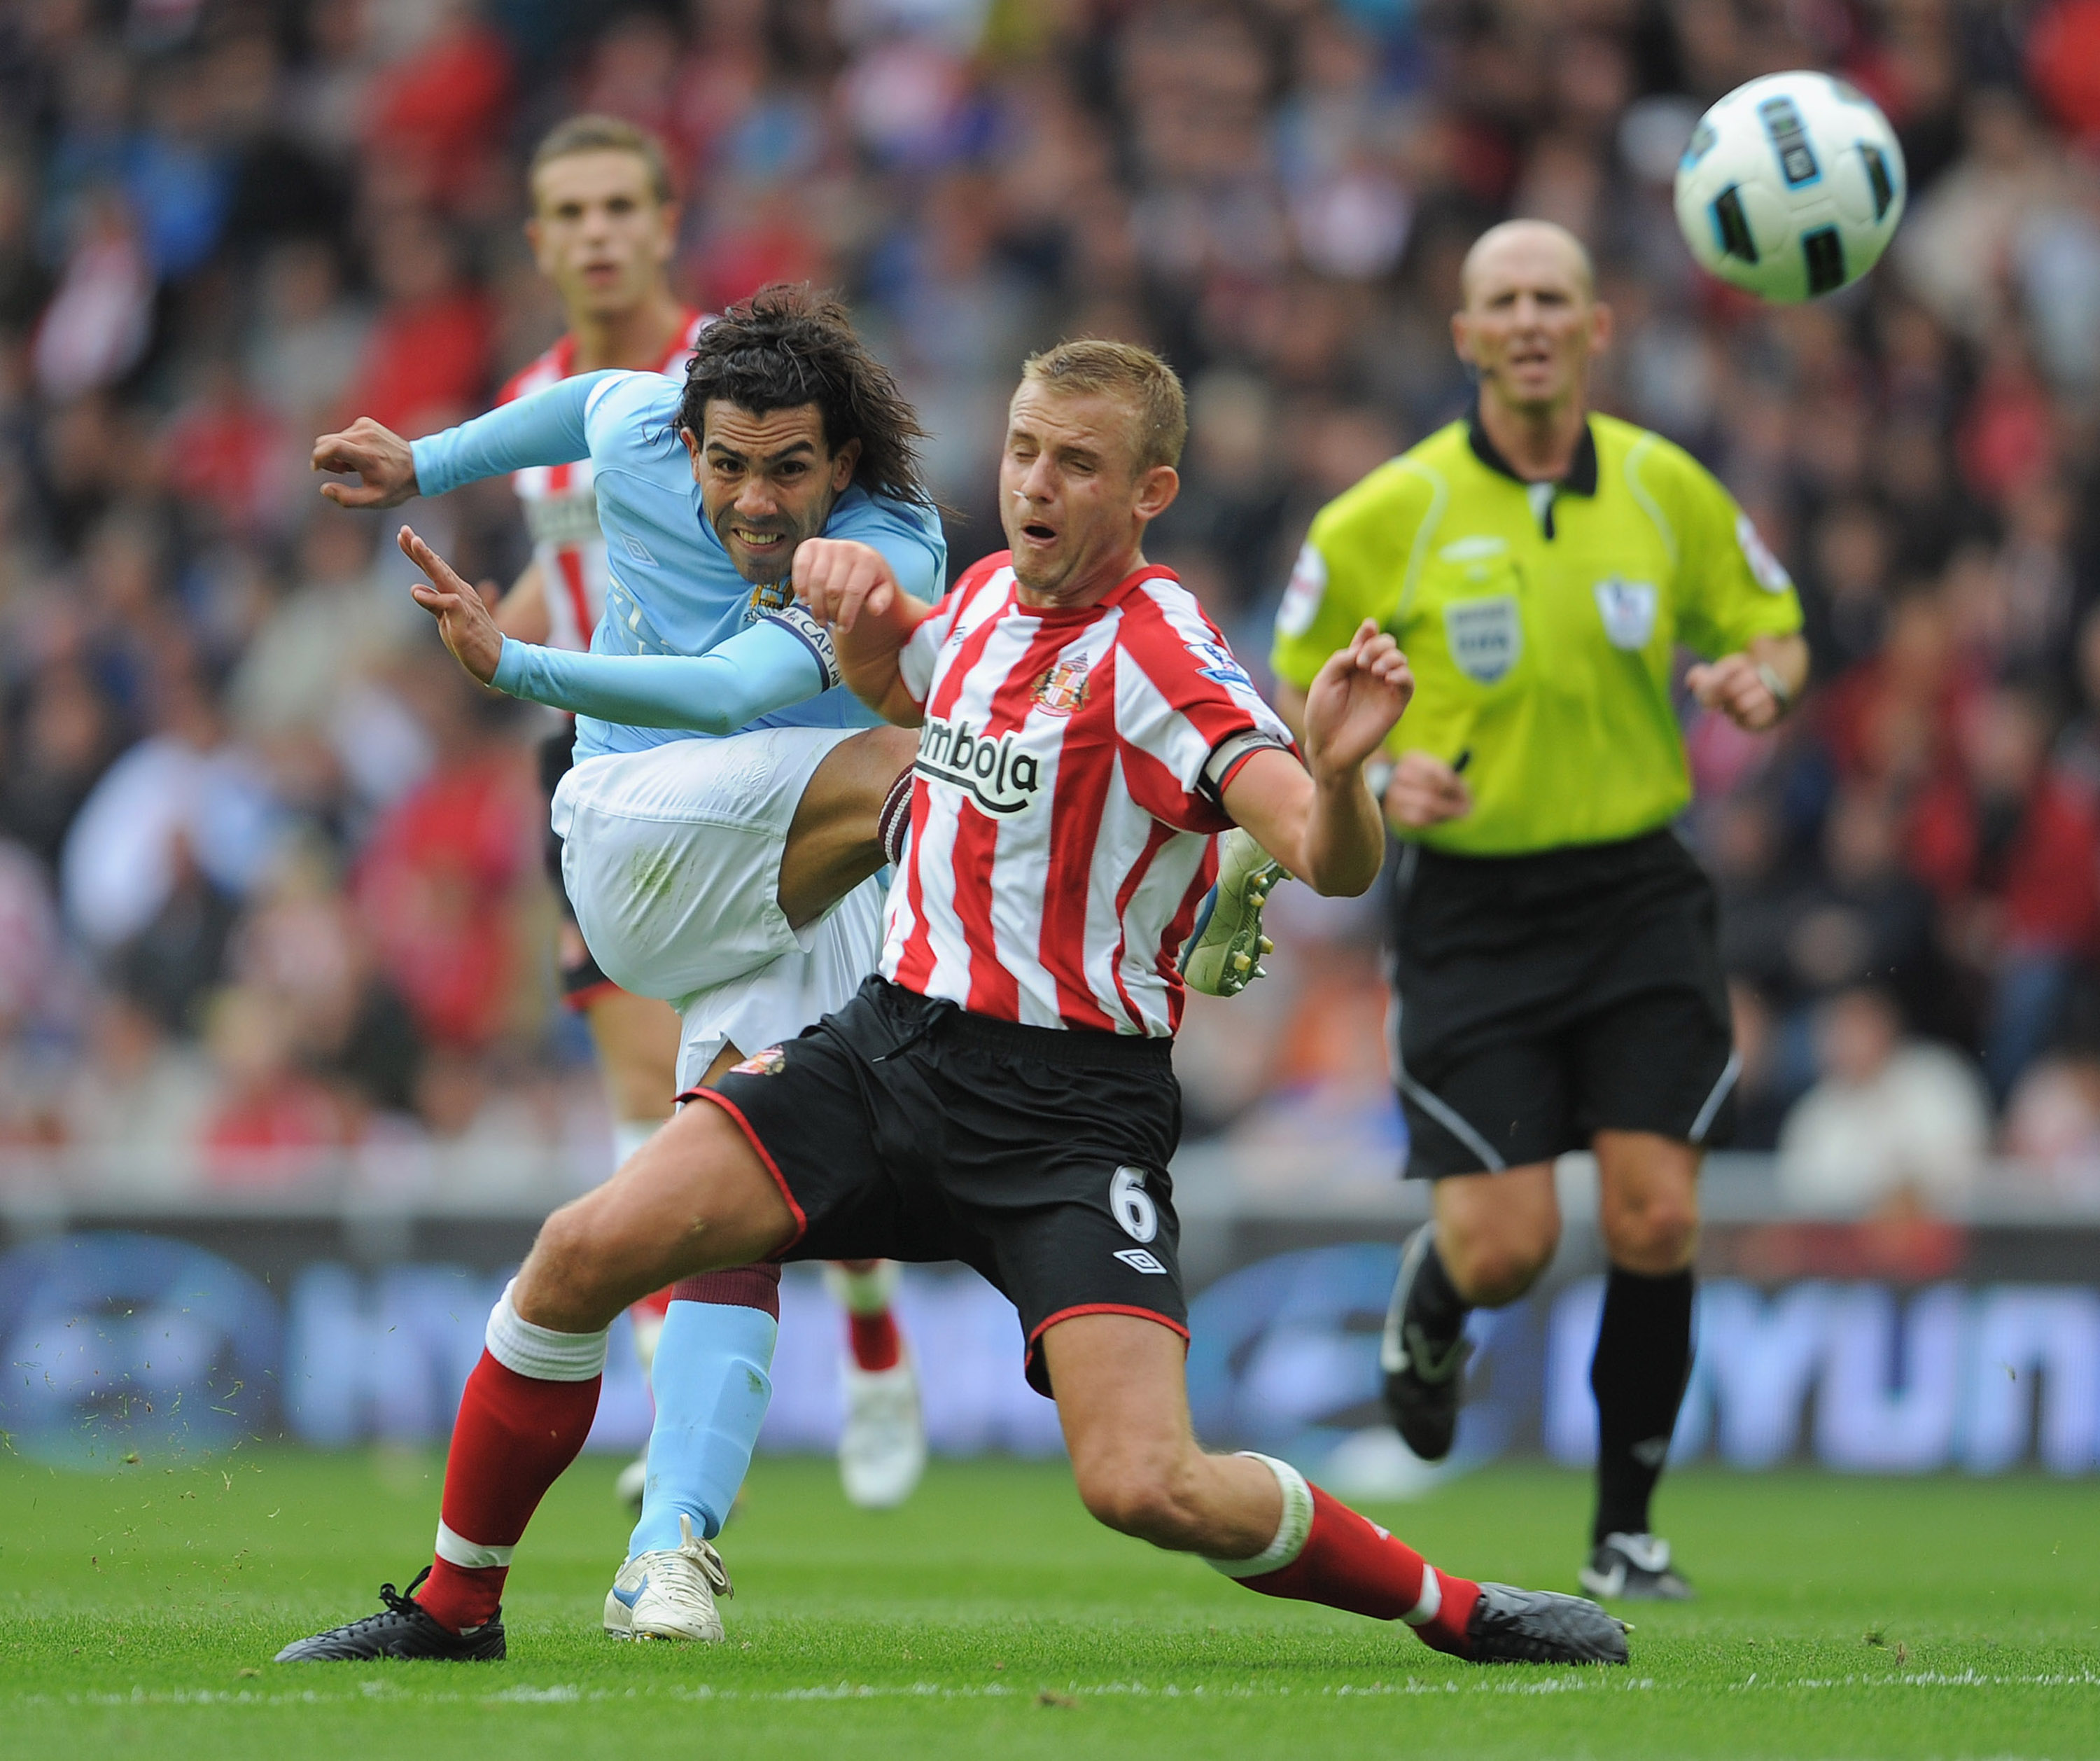 SUNDERLAND, ENGLAND - AUGUST 29: Lee Cattermole of Sunderland tries to block a shot by Carlos Tevez of Manchester City during the Barclays Premier League match between Sunderland and Manchester City at the Stadium of Light on August 29, 2010 in Sunderland